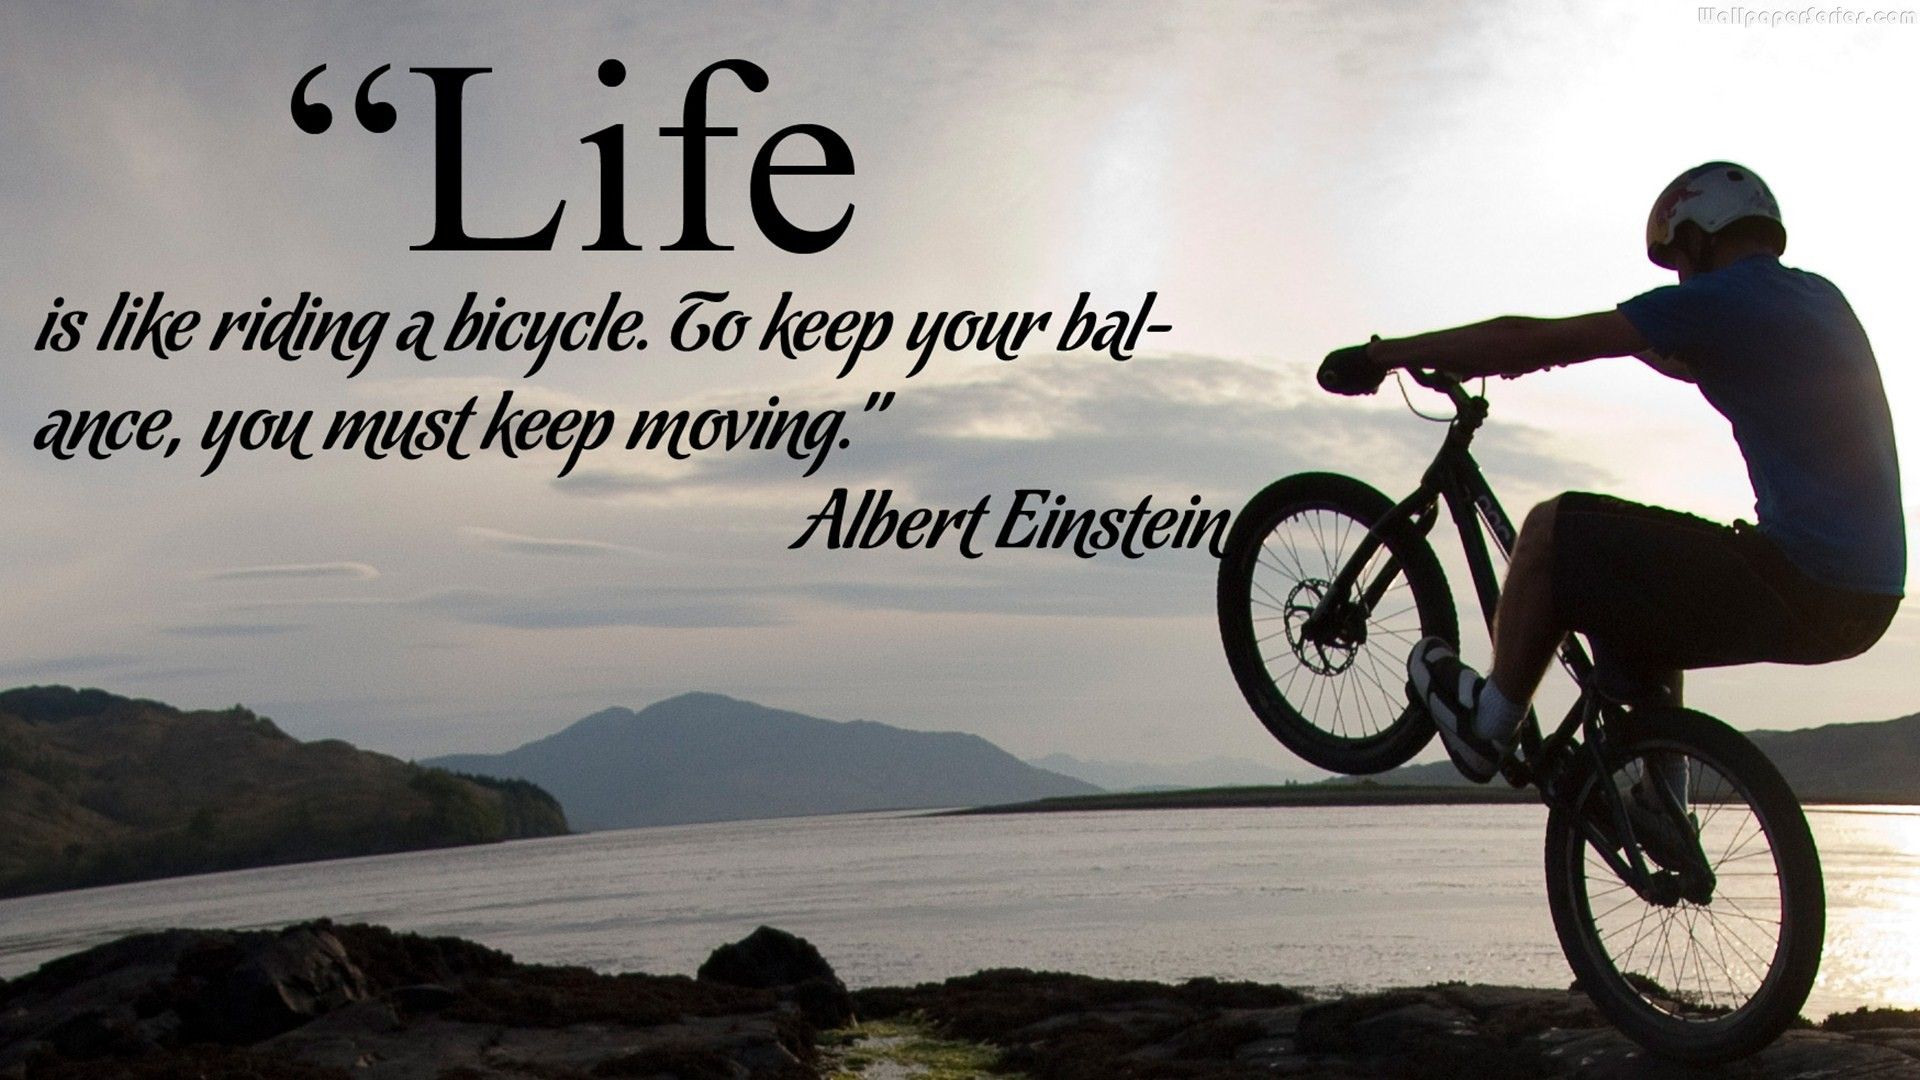 Biking Inspirational Quotes Funny Quotes For Instagram Bicycle